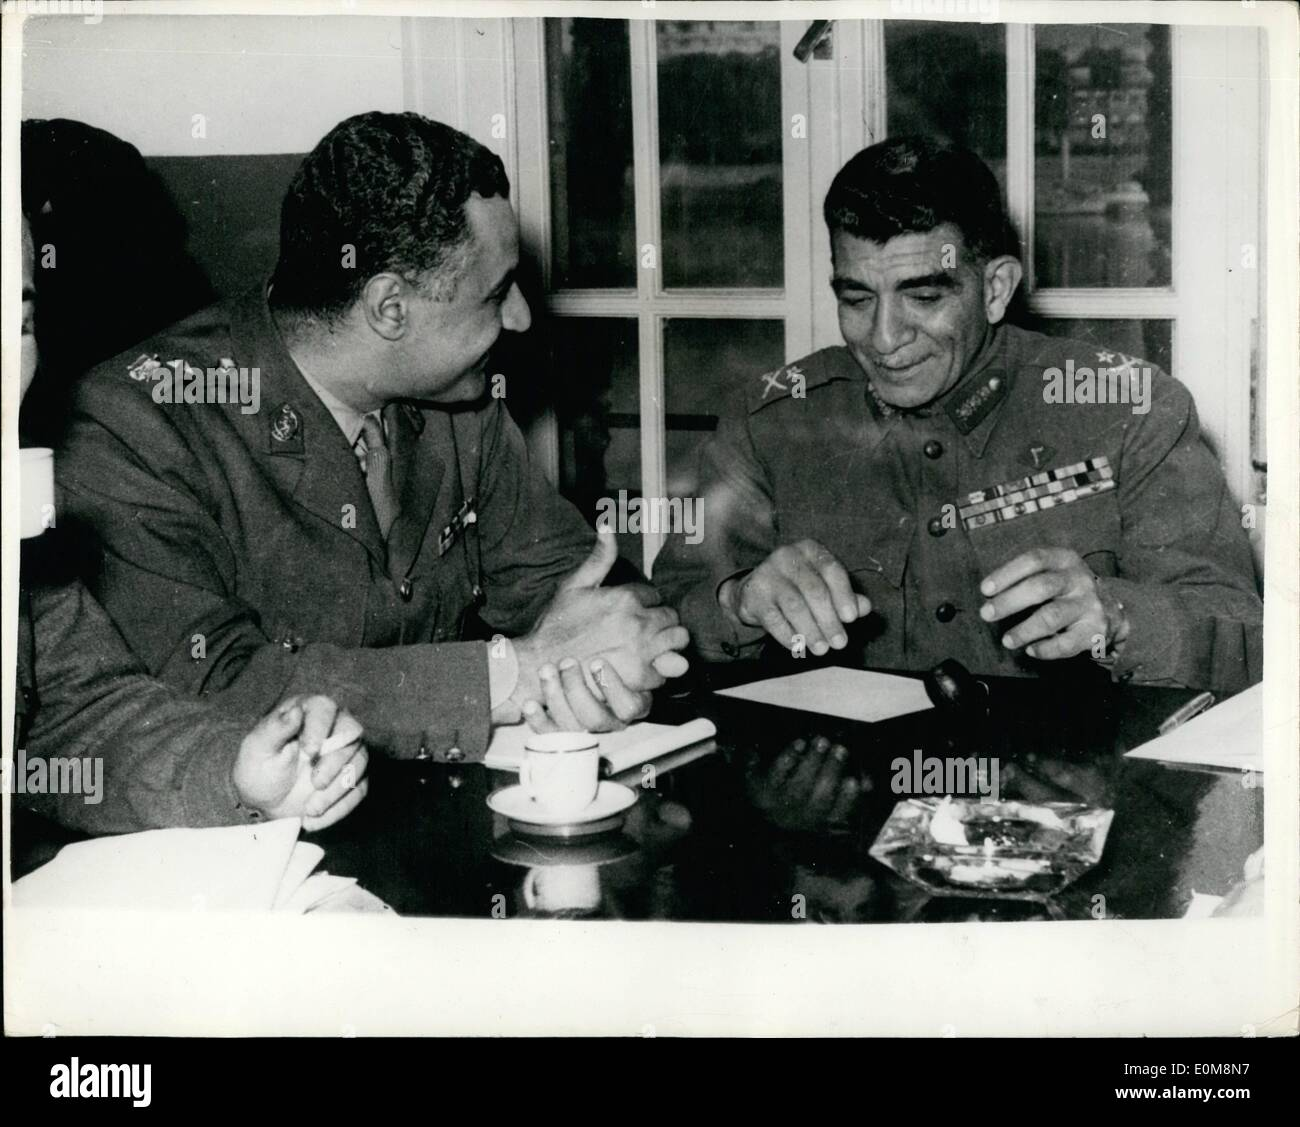 Feb. 02, 1954 - Colonel Nasser takes over in Egypt. Neguib Andis successor at recent meeting.: General Neguib whose - Stock Image